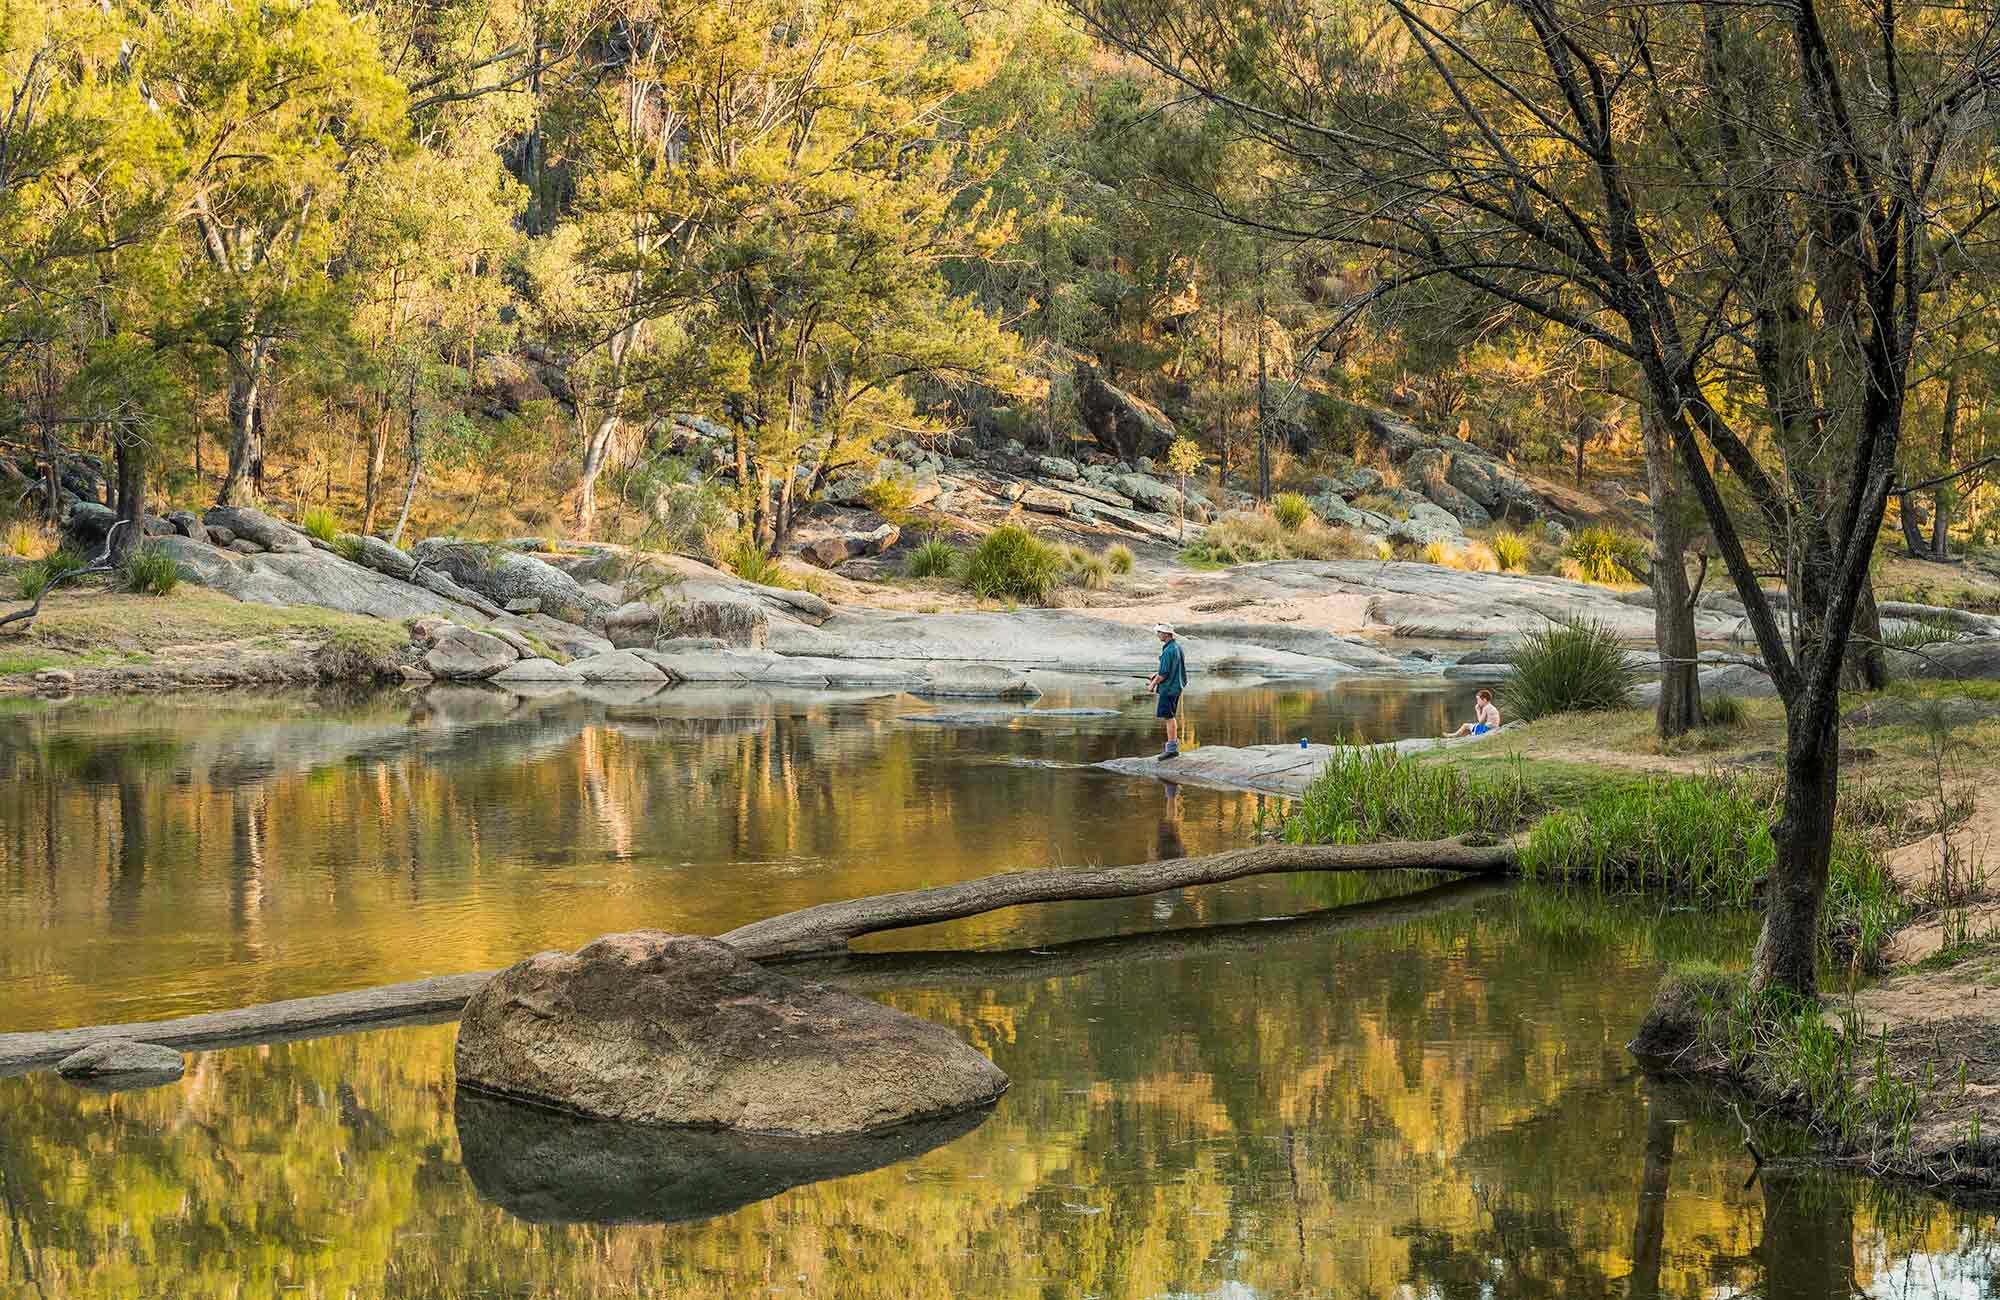 Namoi River hero, Warrabah National Park. Photo: David Young